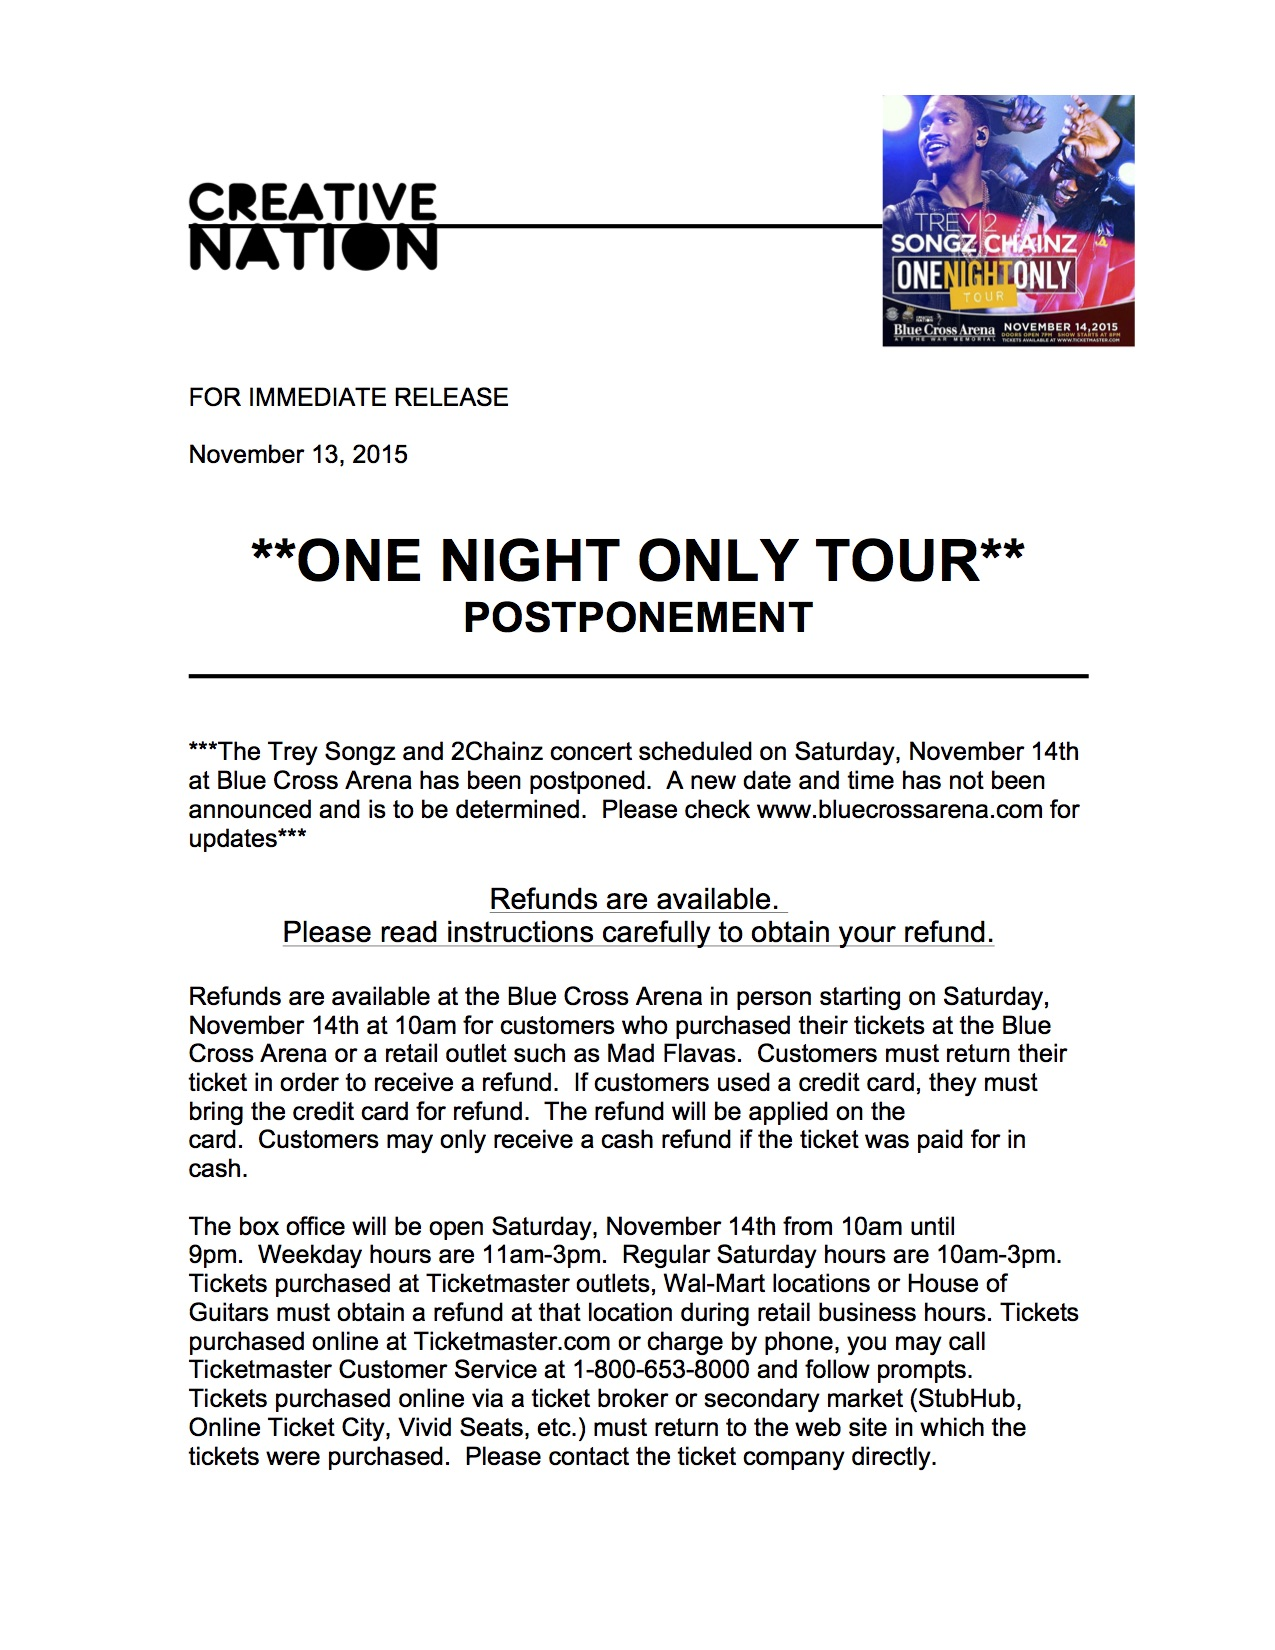 OneNightOnlyTourPostponement 2